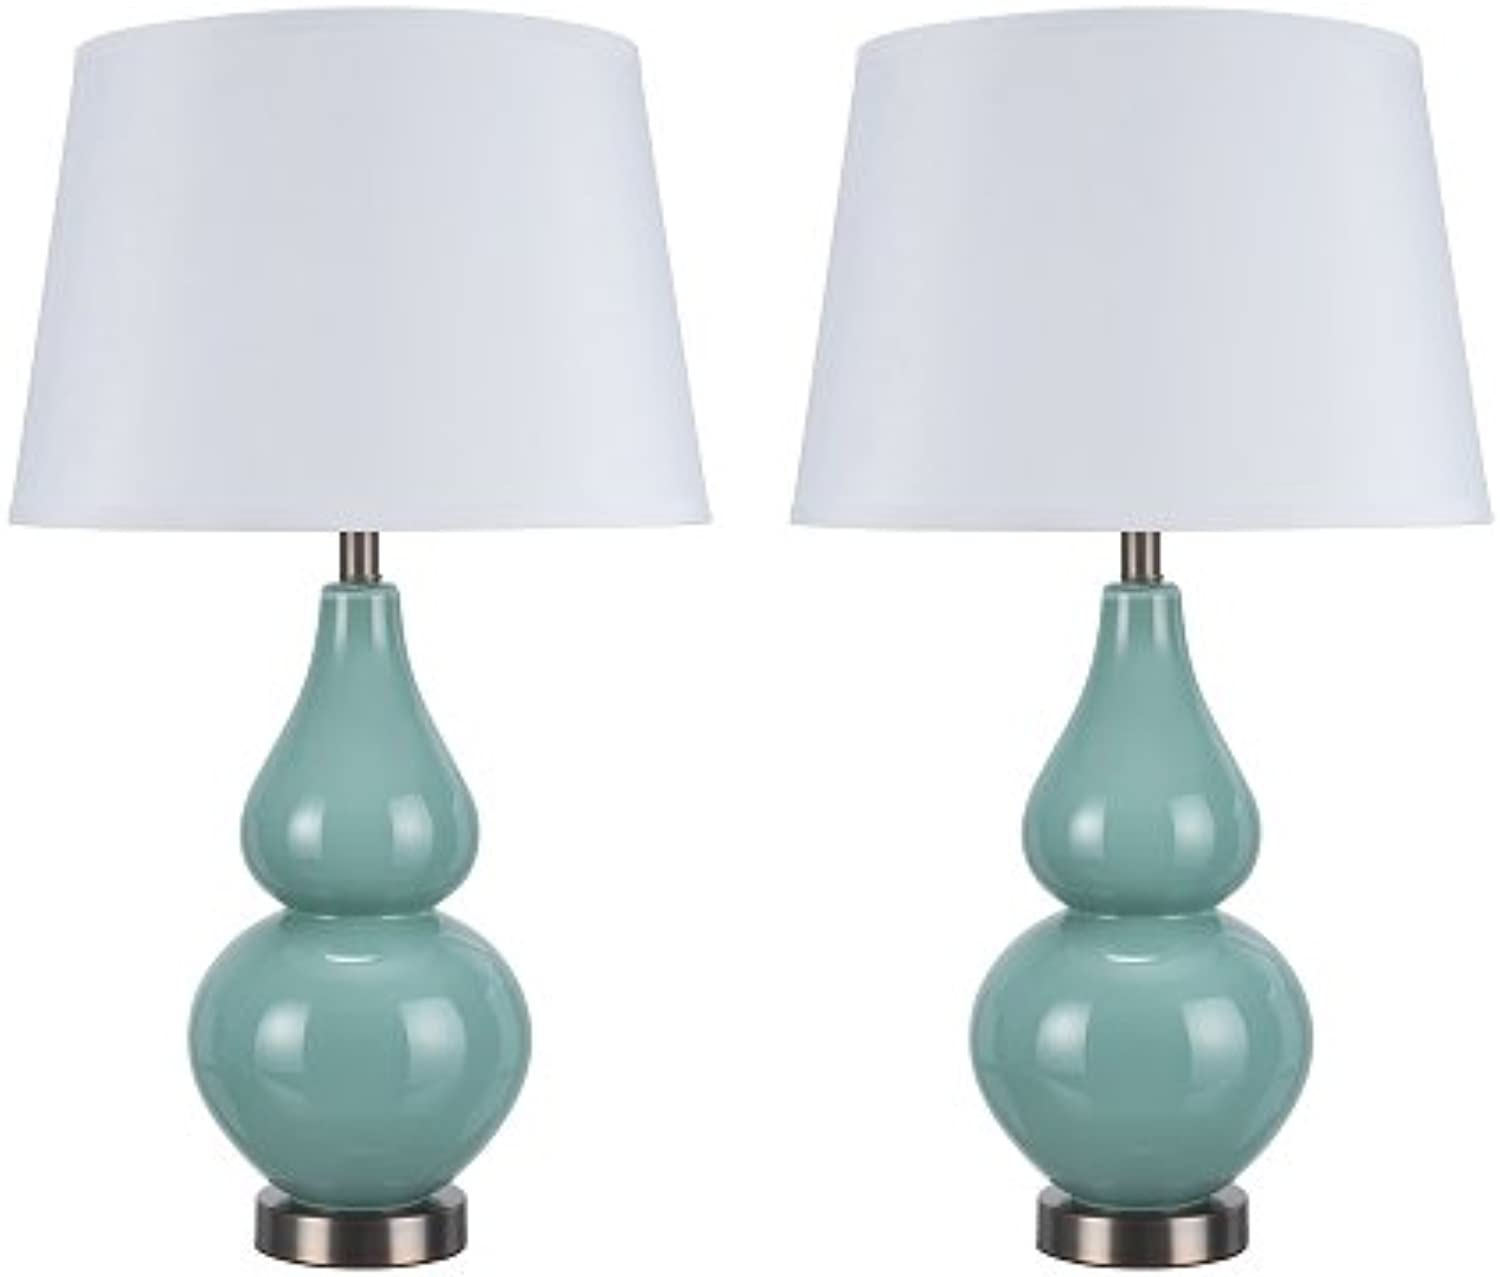 Aspen Creative 40021, Two Pack Set 26  High Modern Glass Table Lamp, Turquoise with Antique Red Copper Base and Hardback Empire Shaped Lamp Shade in White, 15  Wide